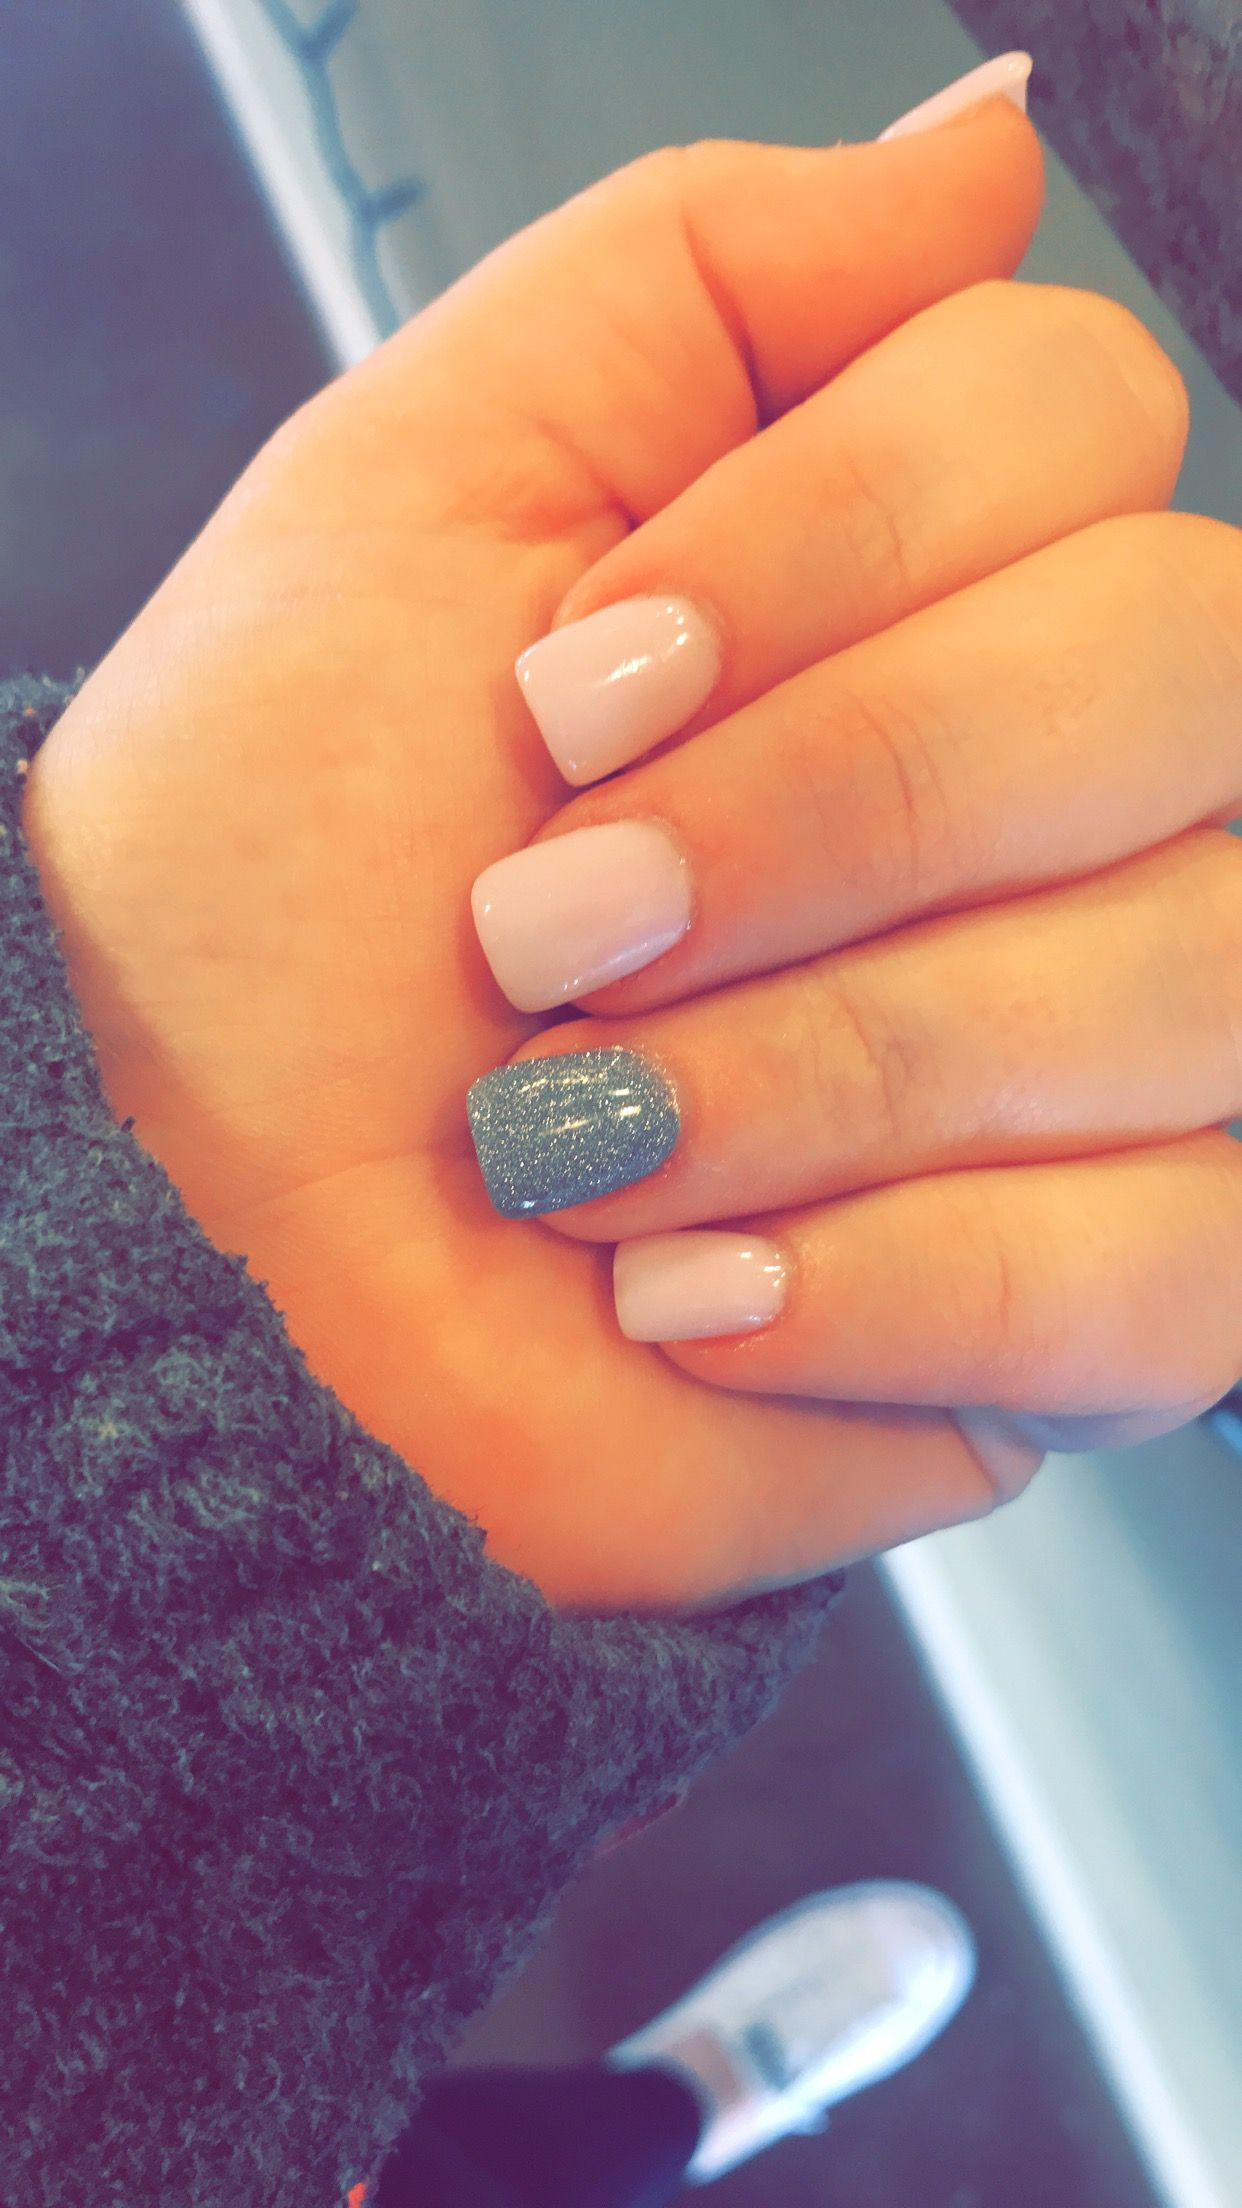 Light Pink And Sparkly Gray Fall Acrylic Nails Short Acrylic Nails Short Acrylic Nails Designs